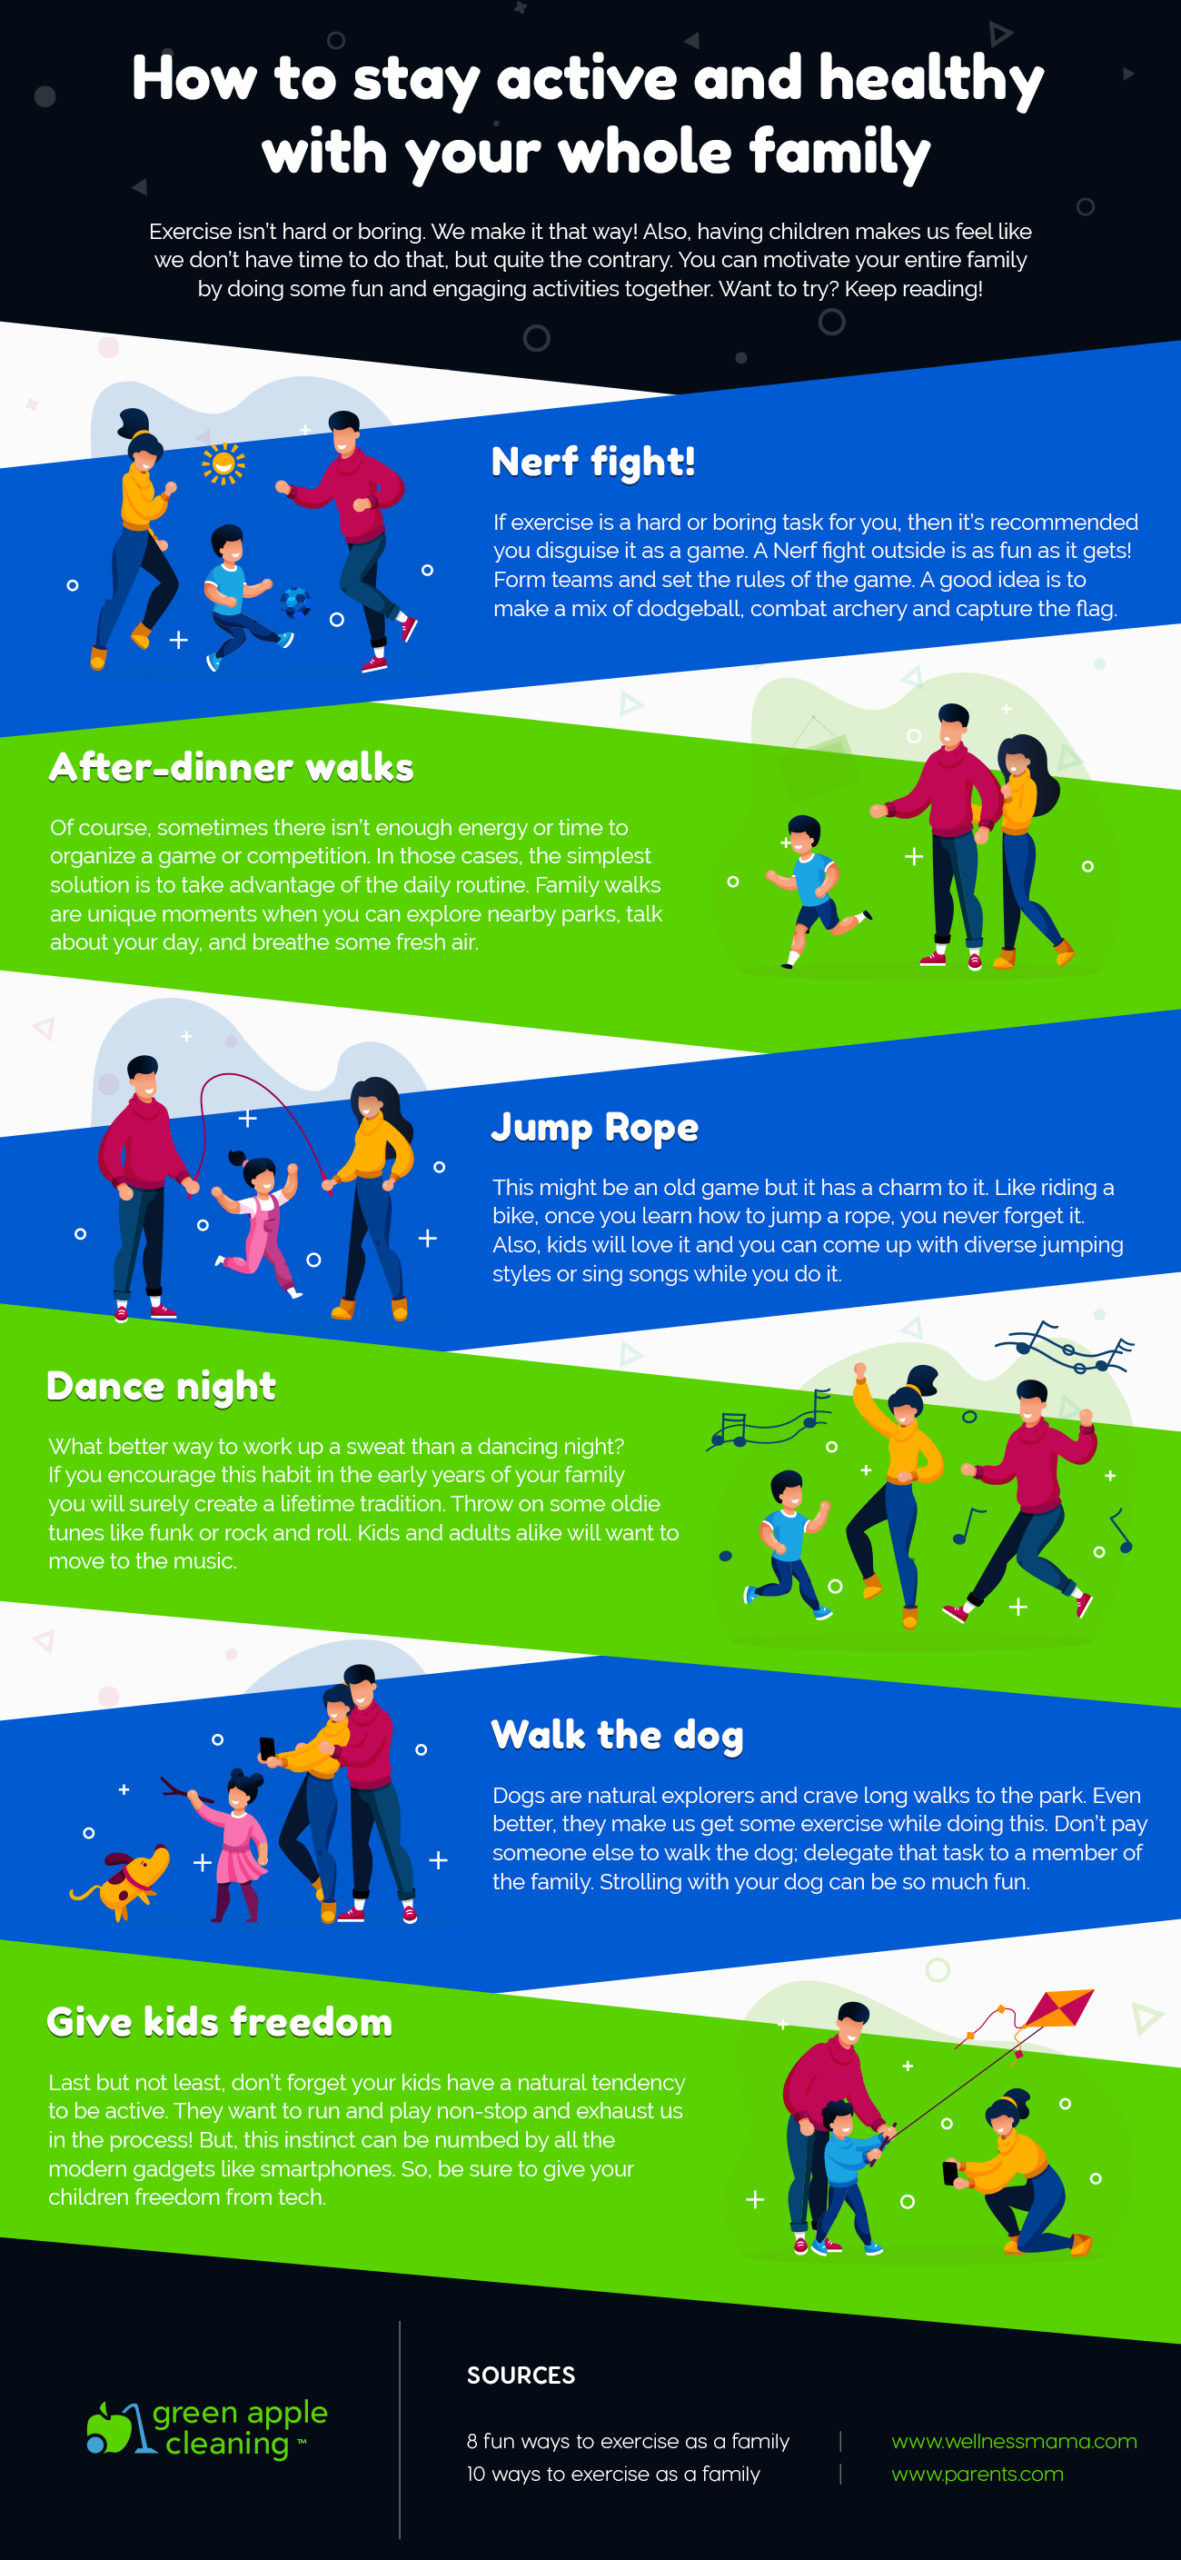 Green Apple Cleaning - How to stay active and healthy with your whole family